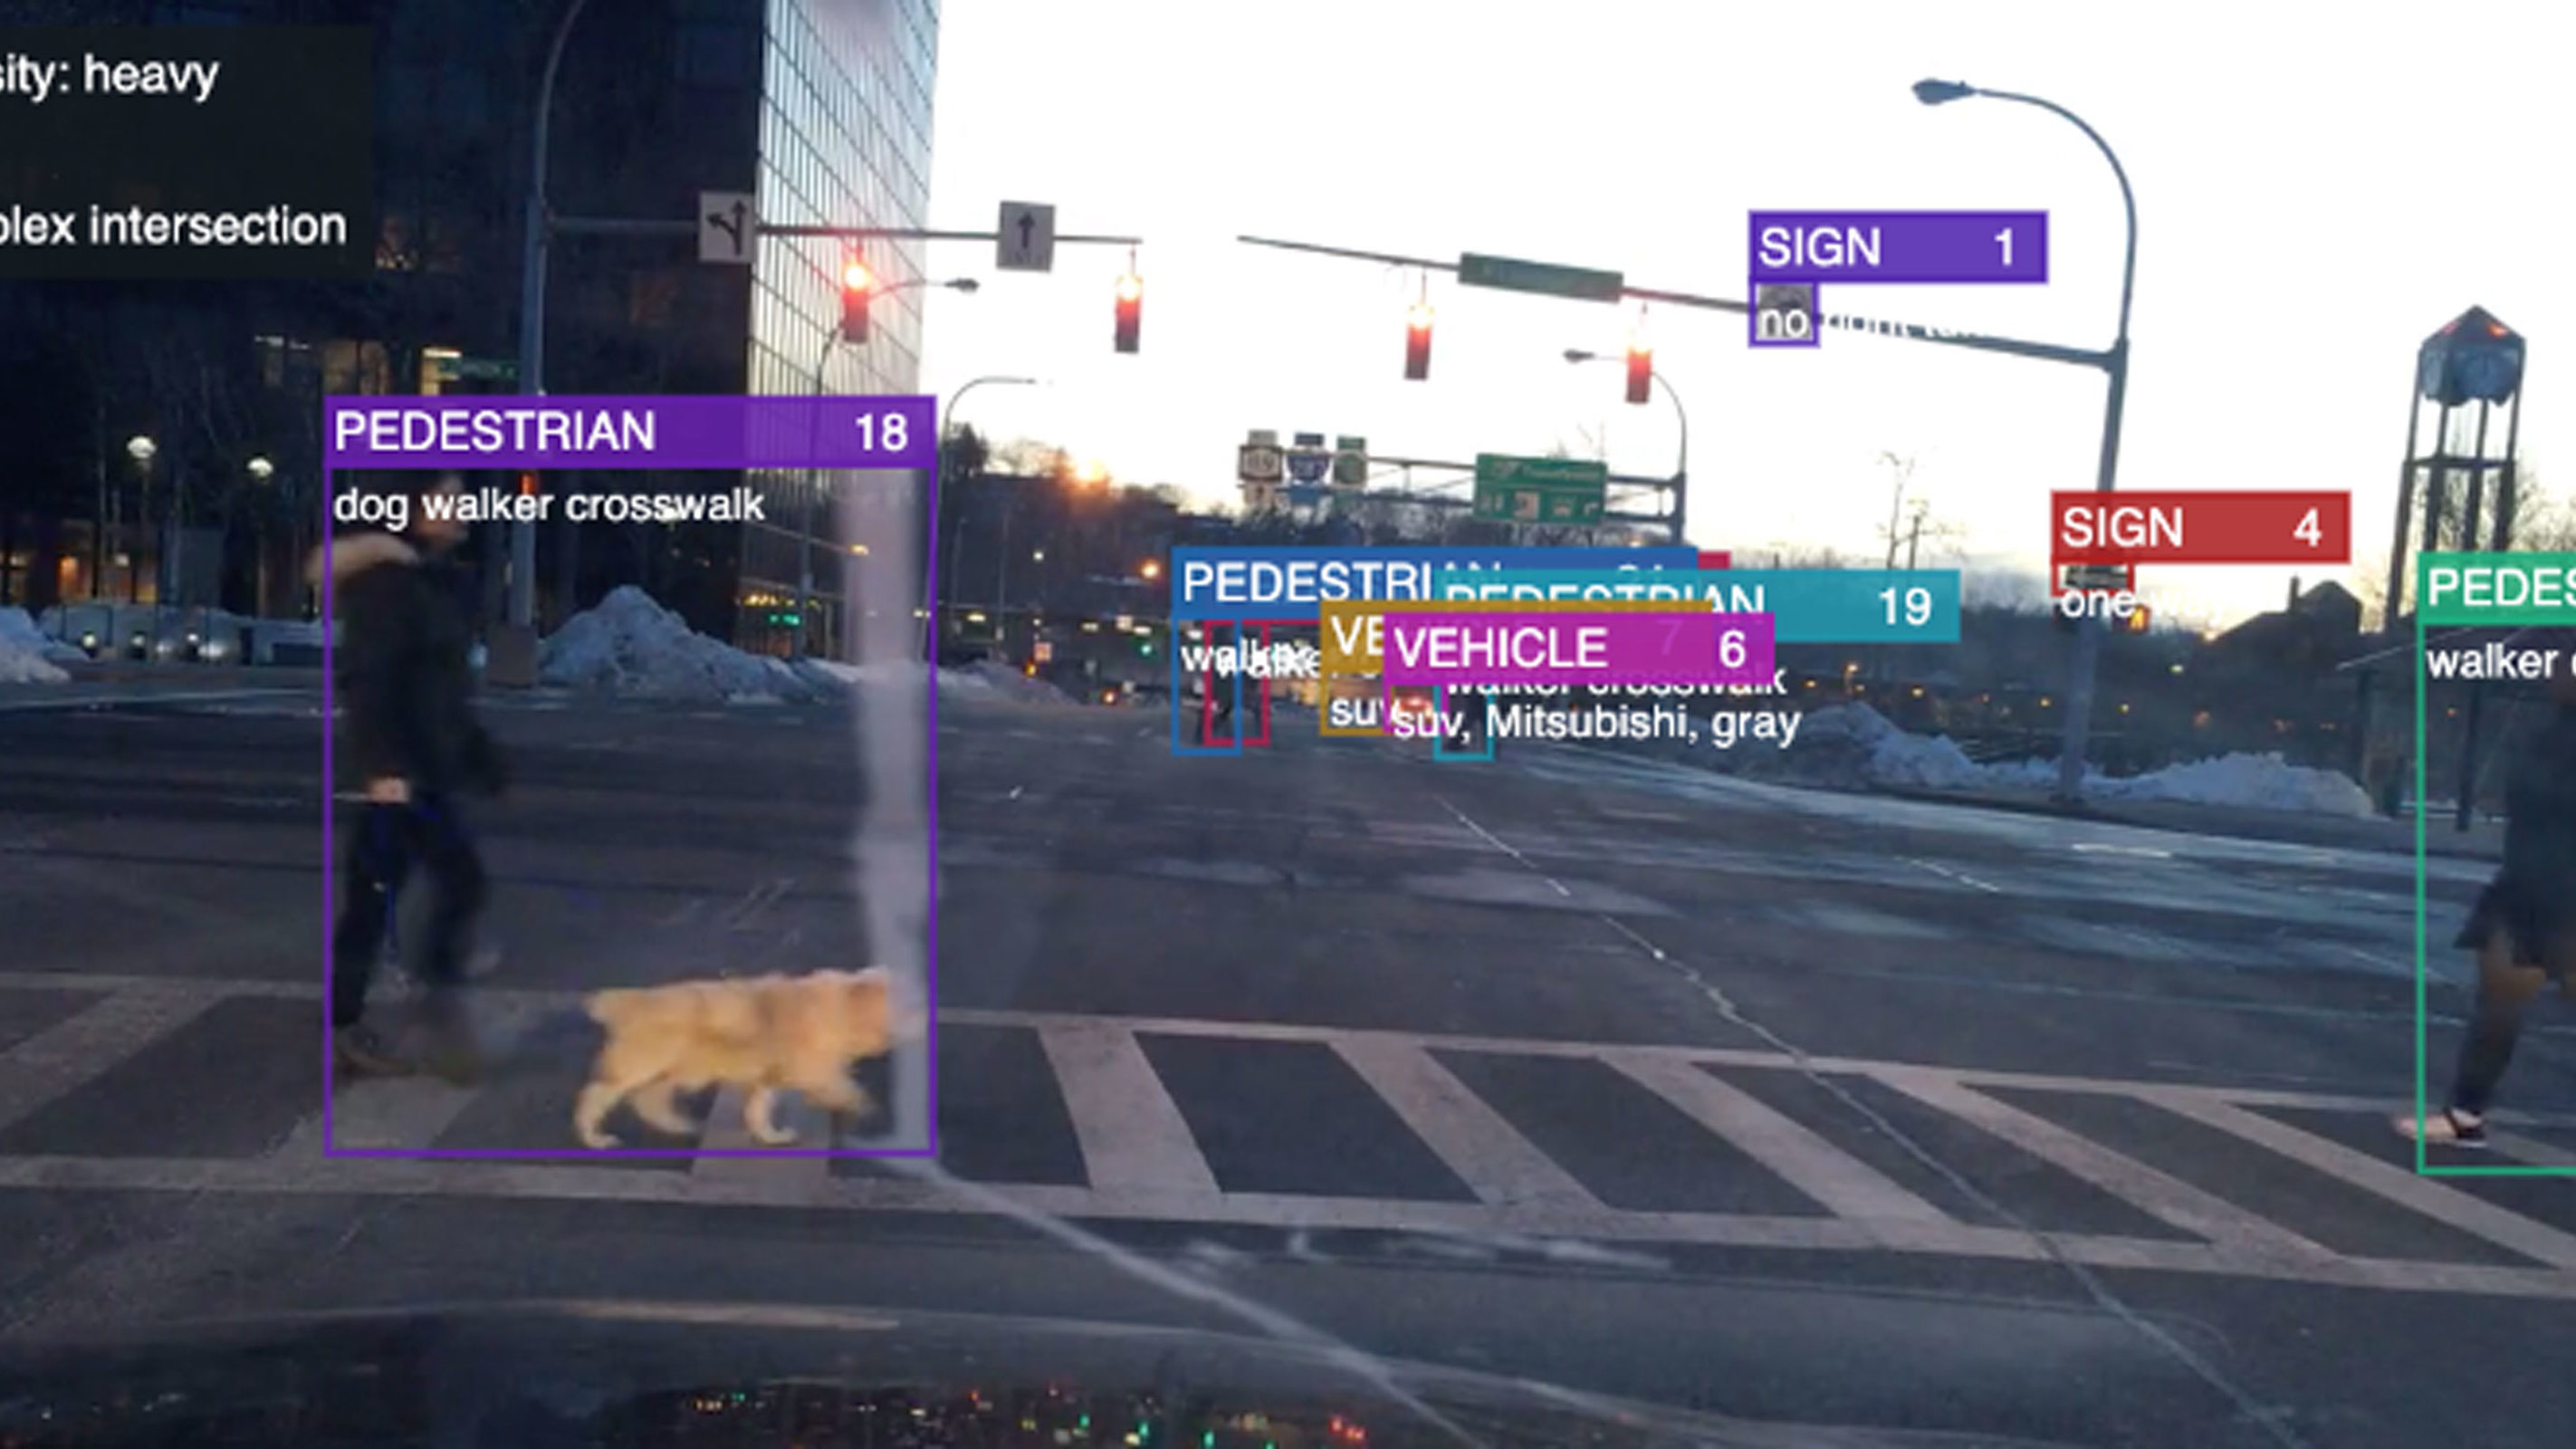 Screenshot of traffic intersection